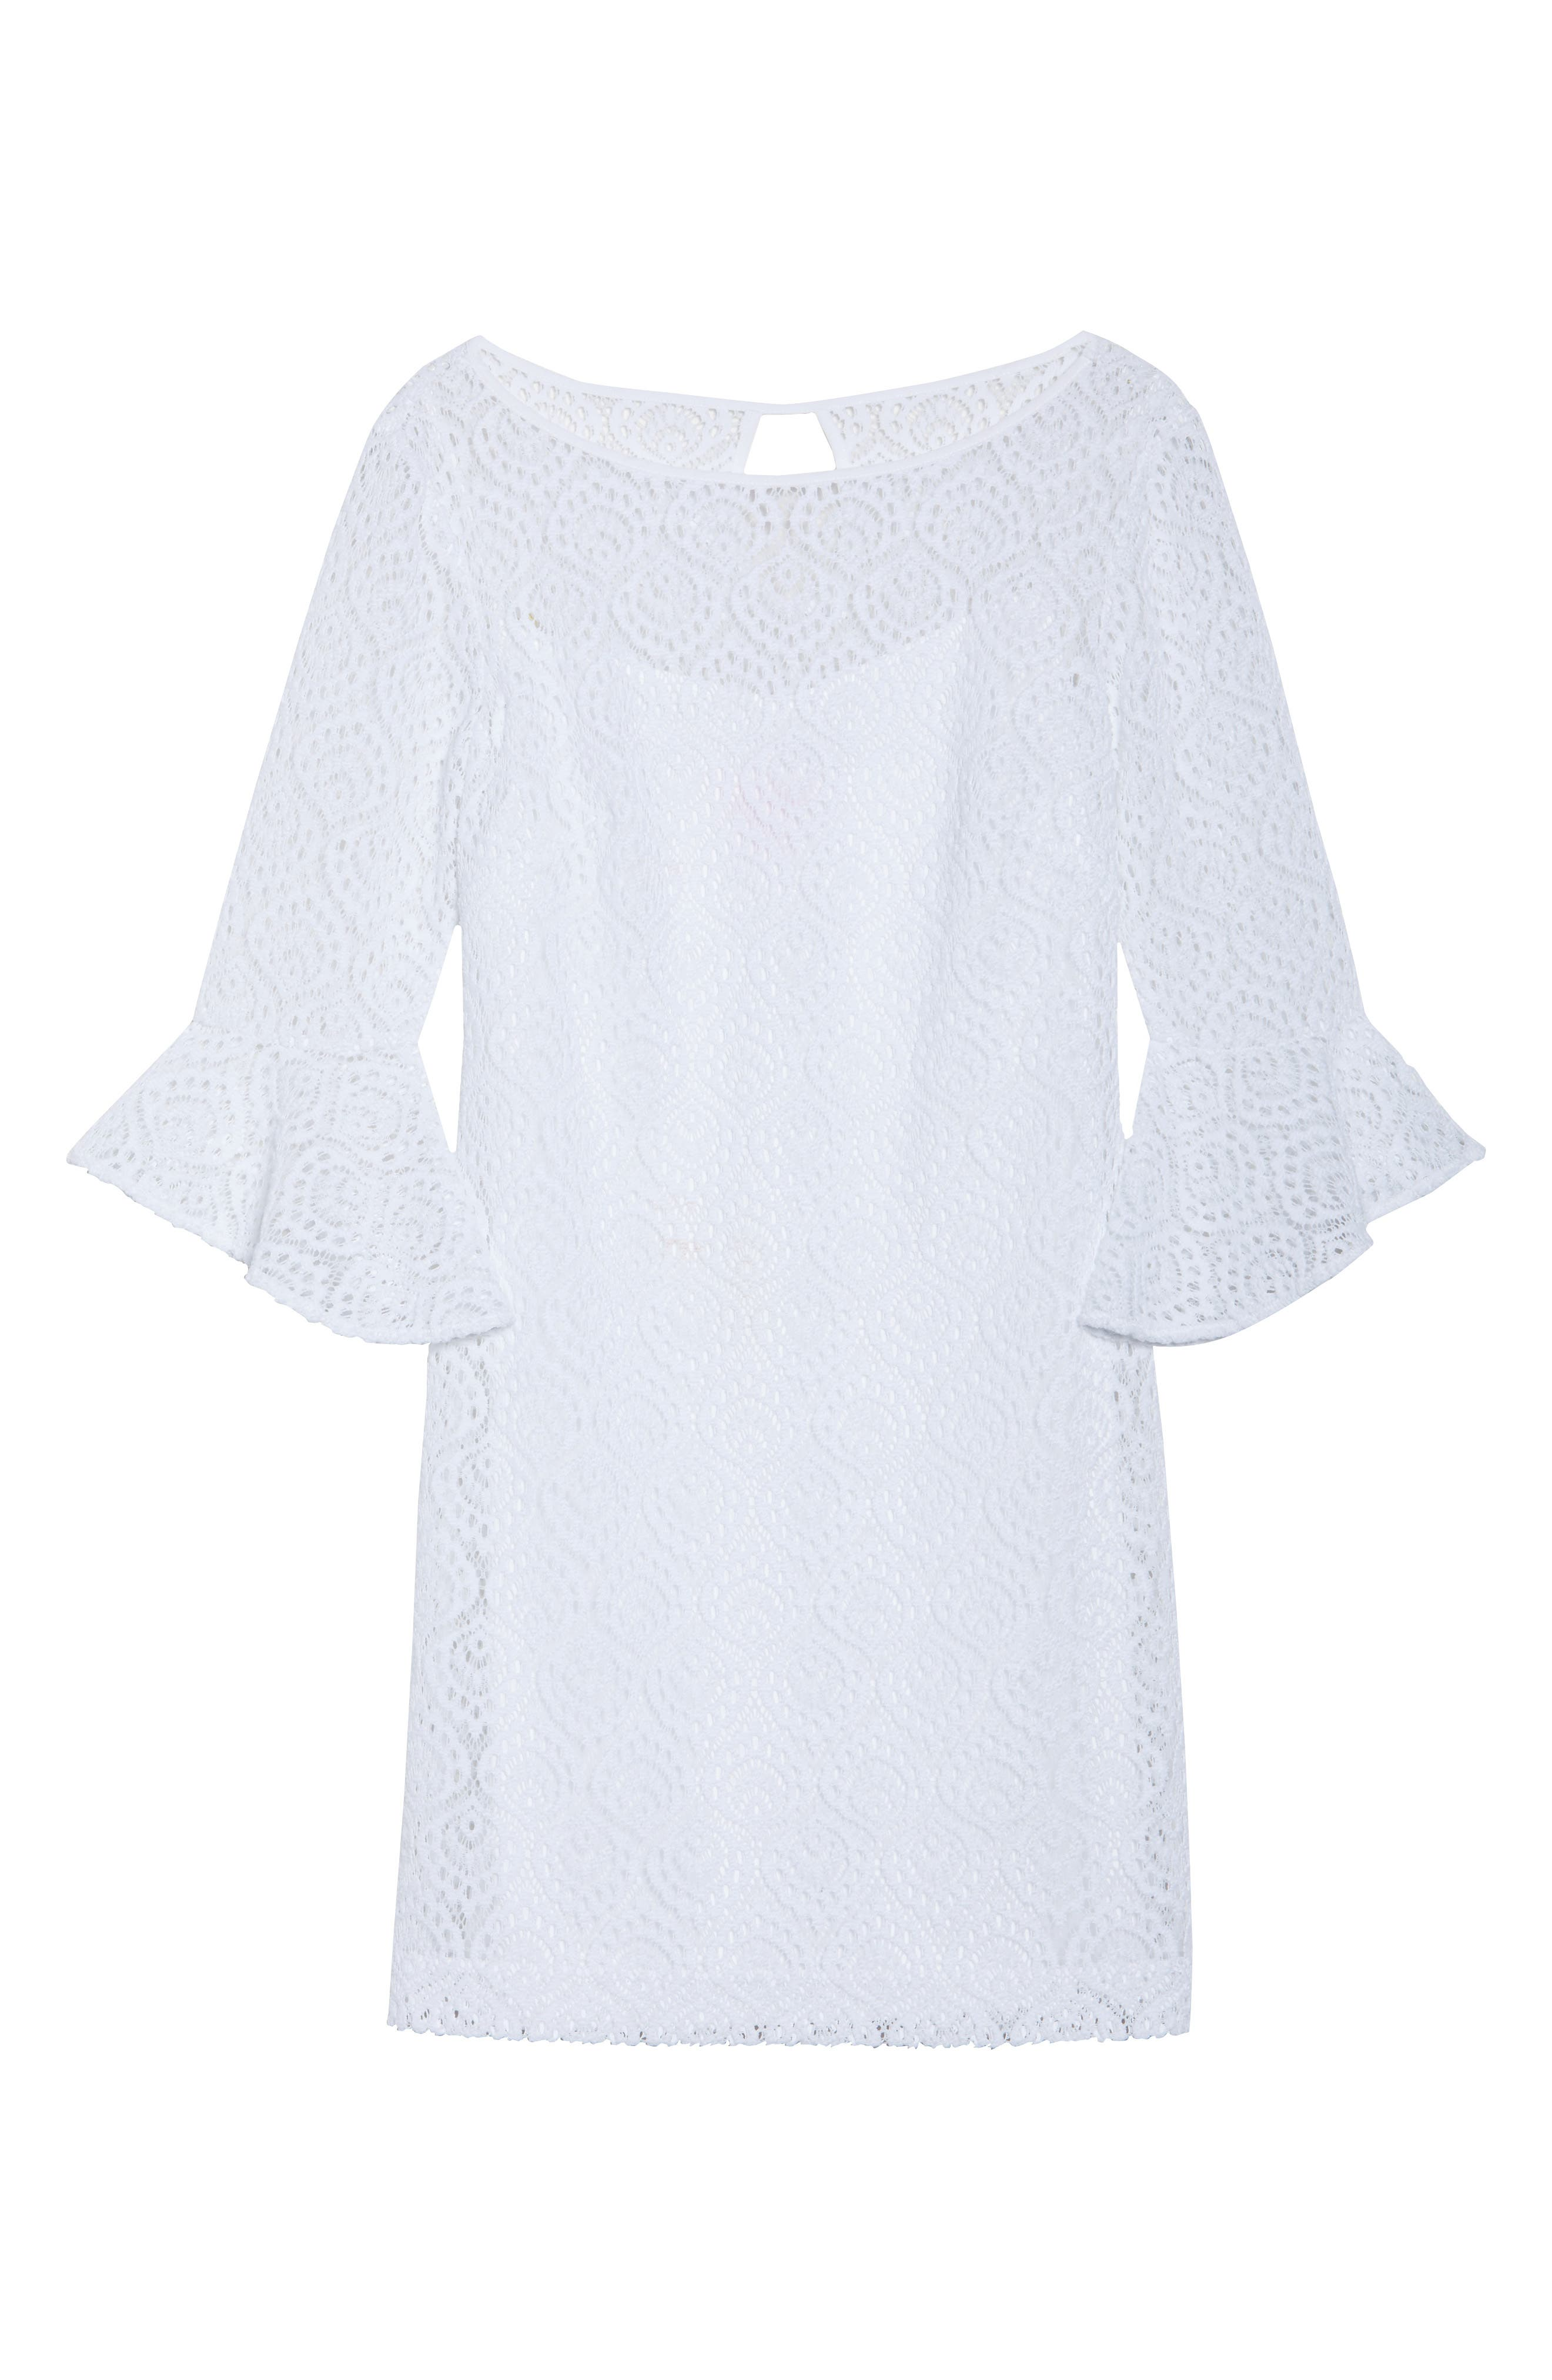 Fontaine Lace Minidress,                             Alternate thumbnail 6, color,                             Resort White Gypsea Lace